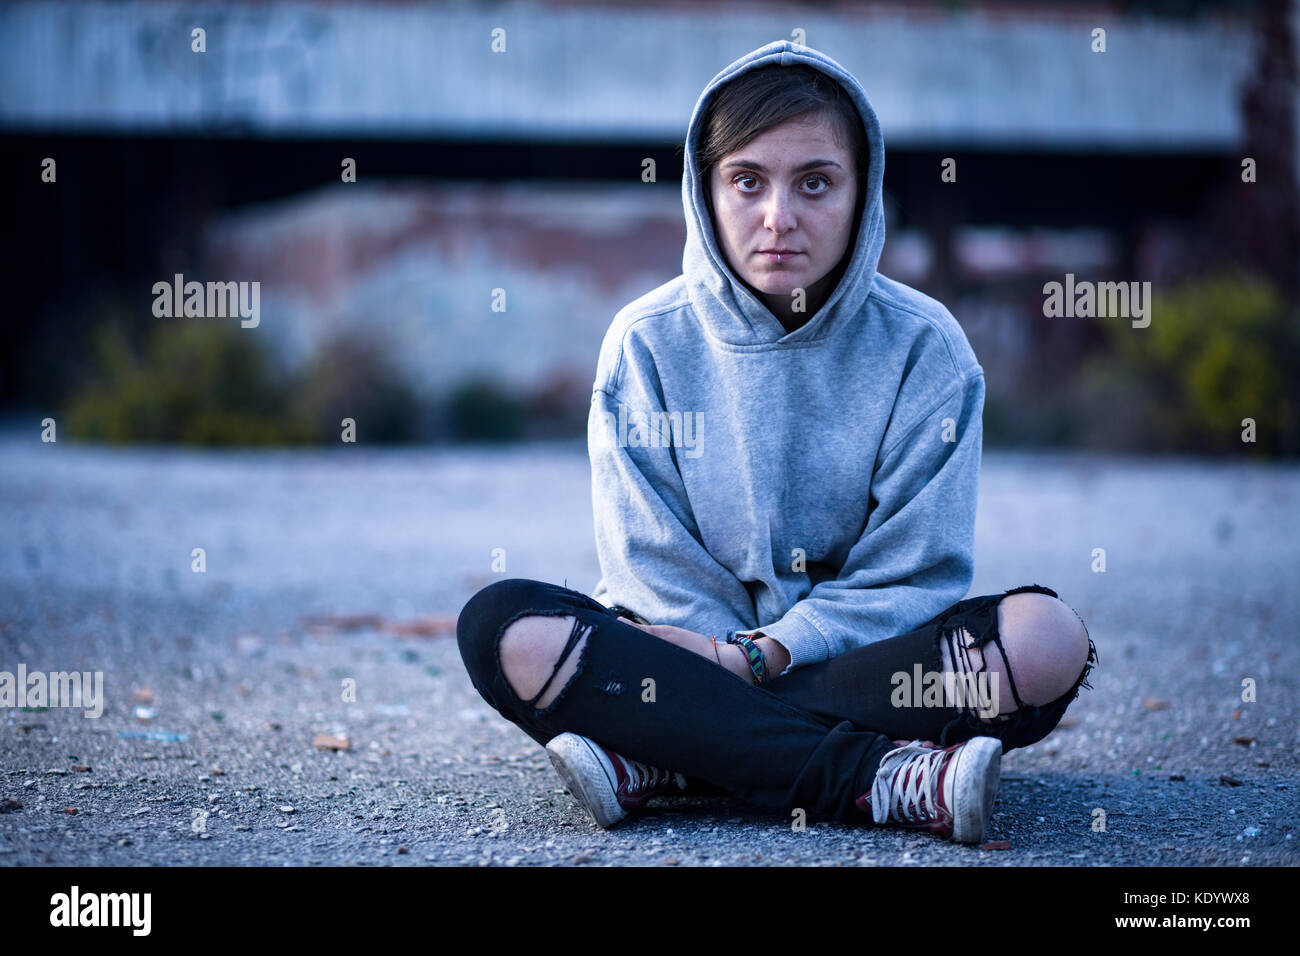 Woman with Sweatshirt and Torn Trousers Sitting on the Street - Stock Image